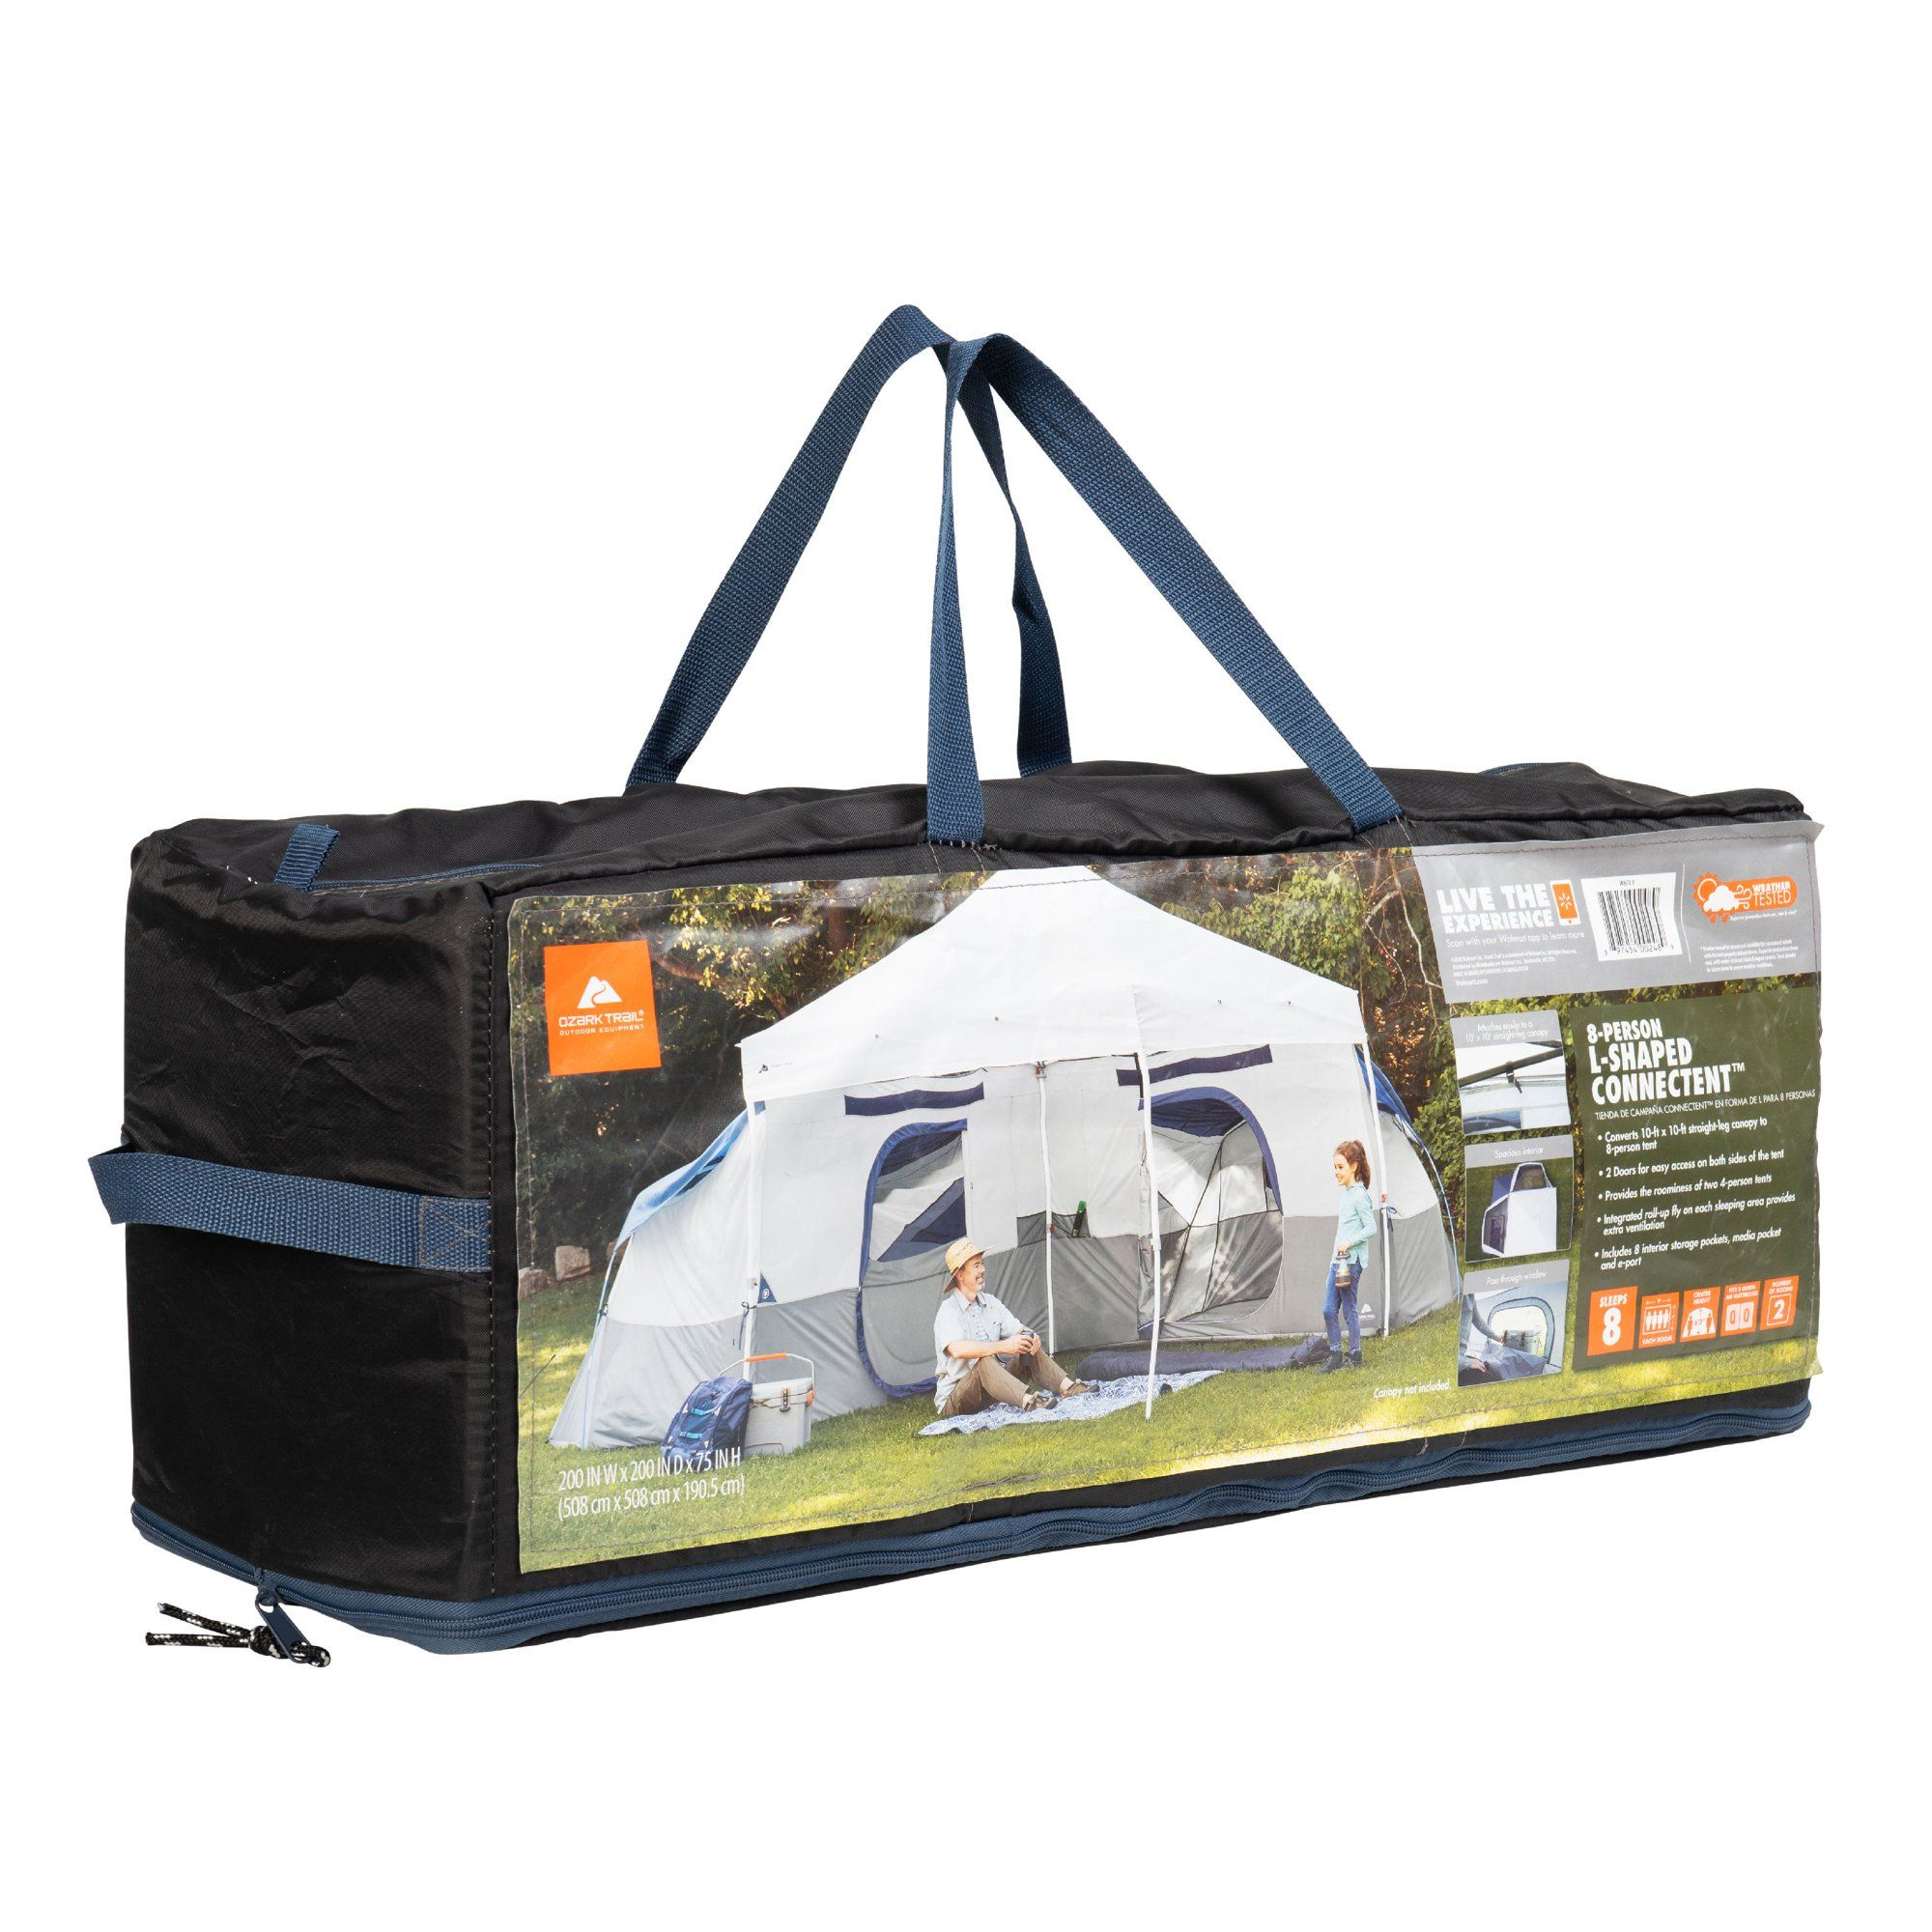 Ozark Trail 8 Person Connect Tent Straight Leg Canopy Sold Separately Walmart Com In 2021 Ozark Tent Weights Tent